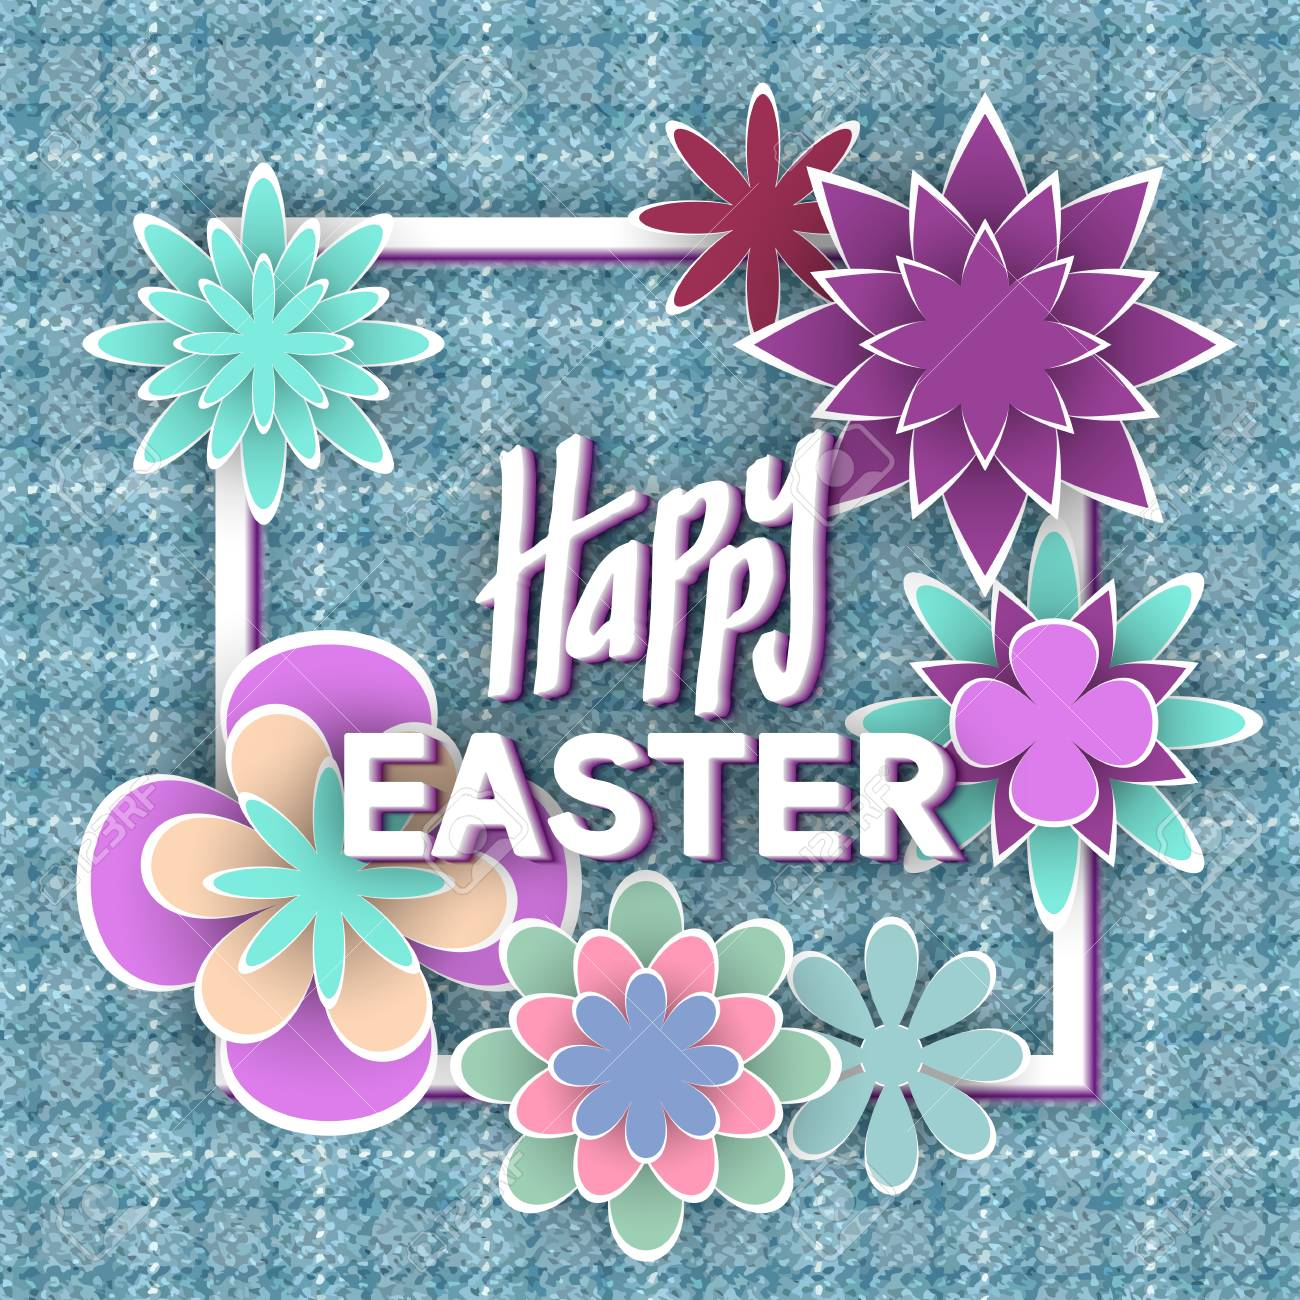 Happy Easter With Paper Flowers For Invitation Card Design Stock